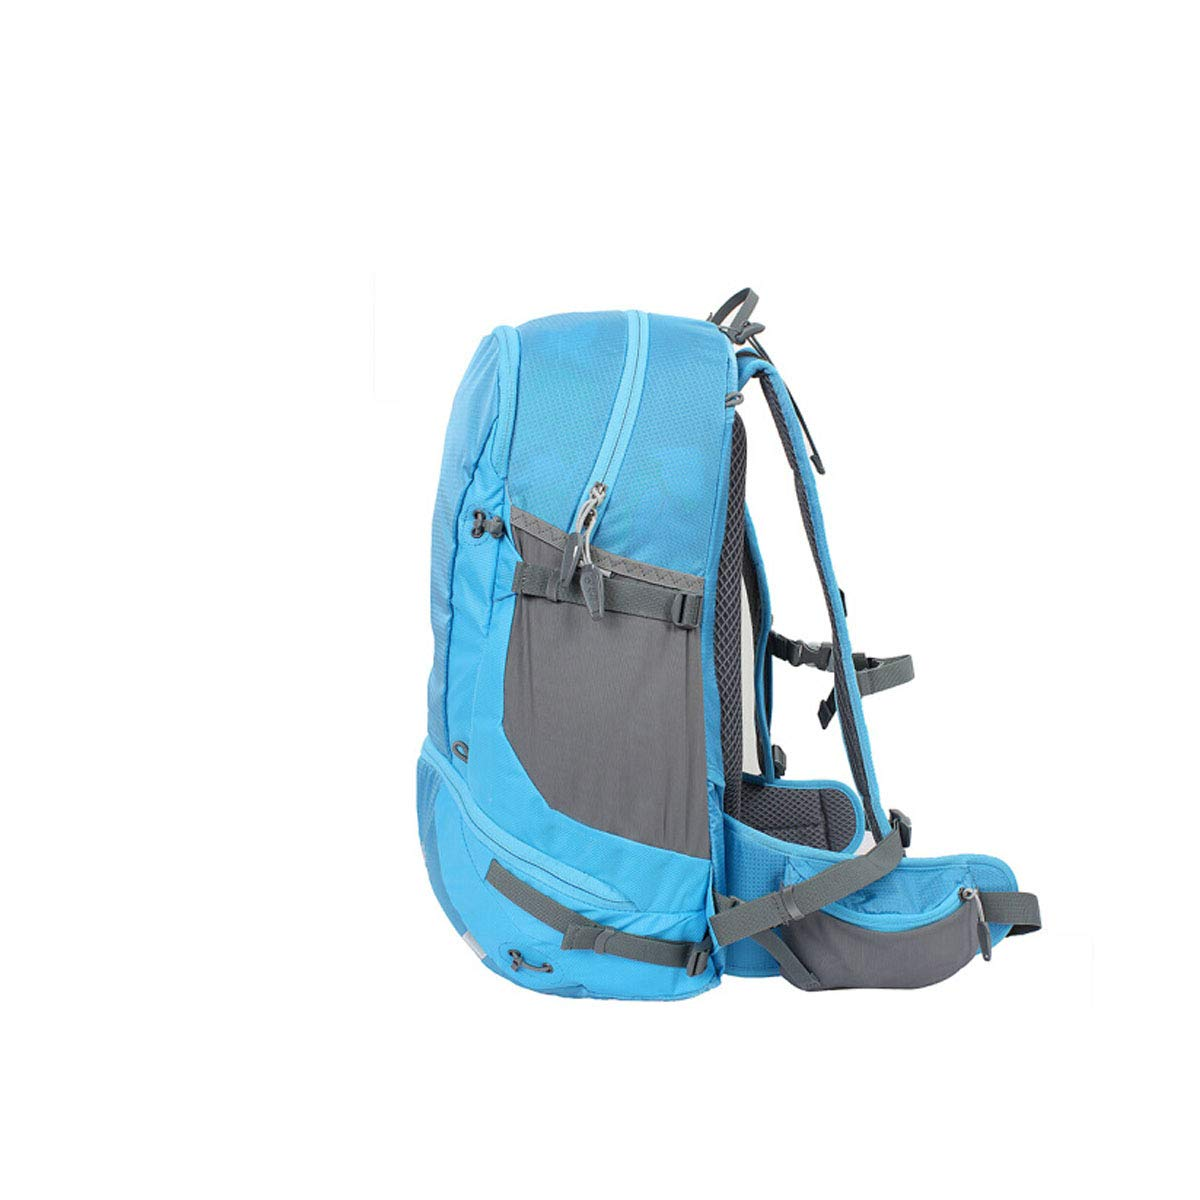 Chenjinxiang Casual Ultra Lightweight Comfortable Travel Backpack, Blue (Color : Blue) by Chenjinxiang (Image #3)